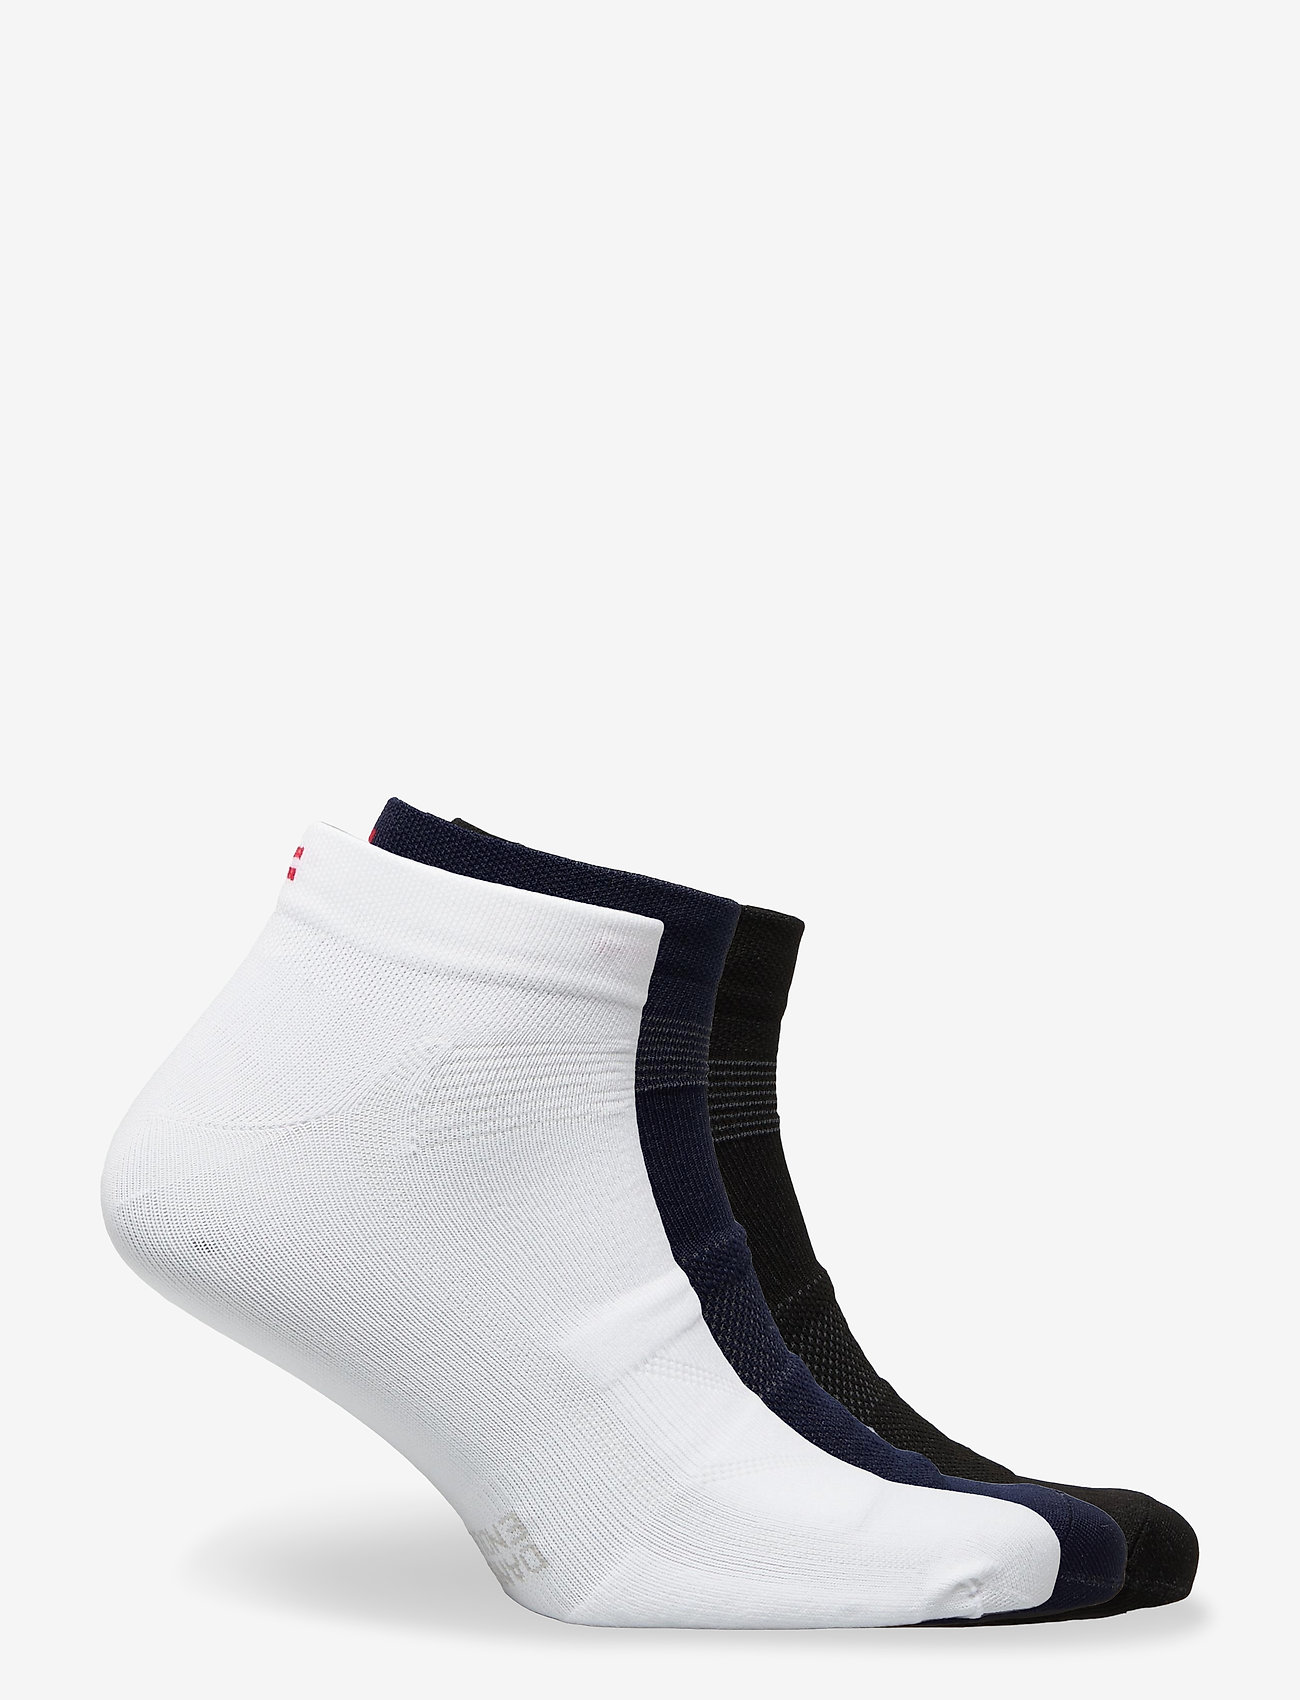 Danish Endurance - Low Cut Cycling Socks 3 Pack - kousen - multicolor (1x black, 1x blue, 1x white/stripes) - 1